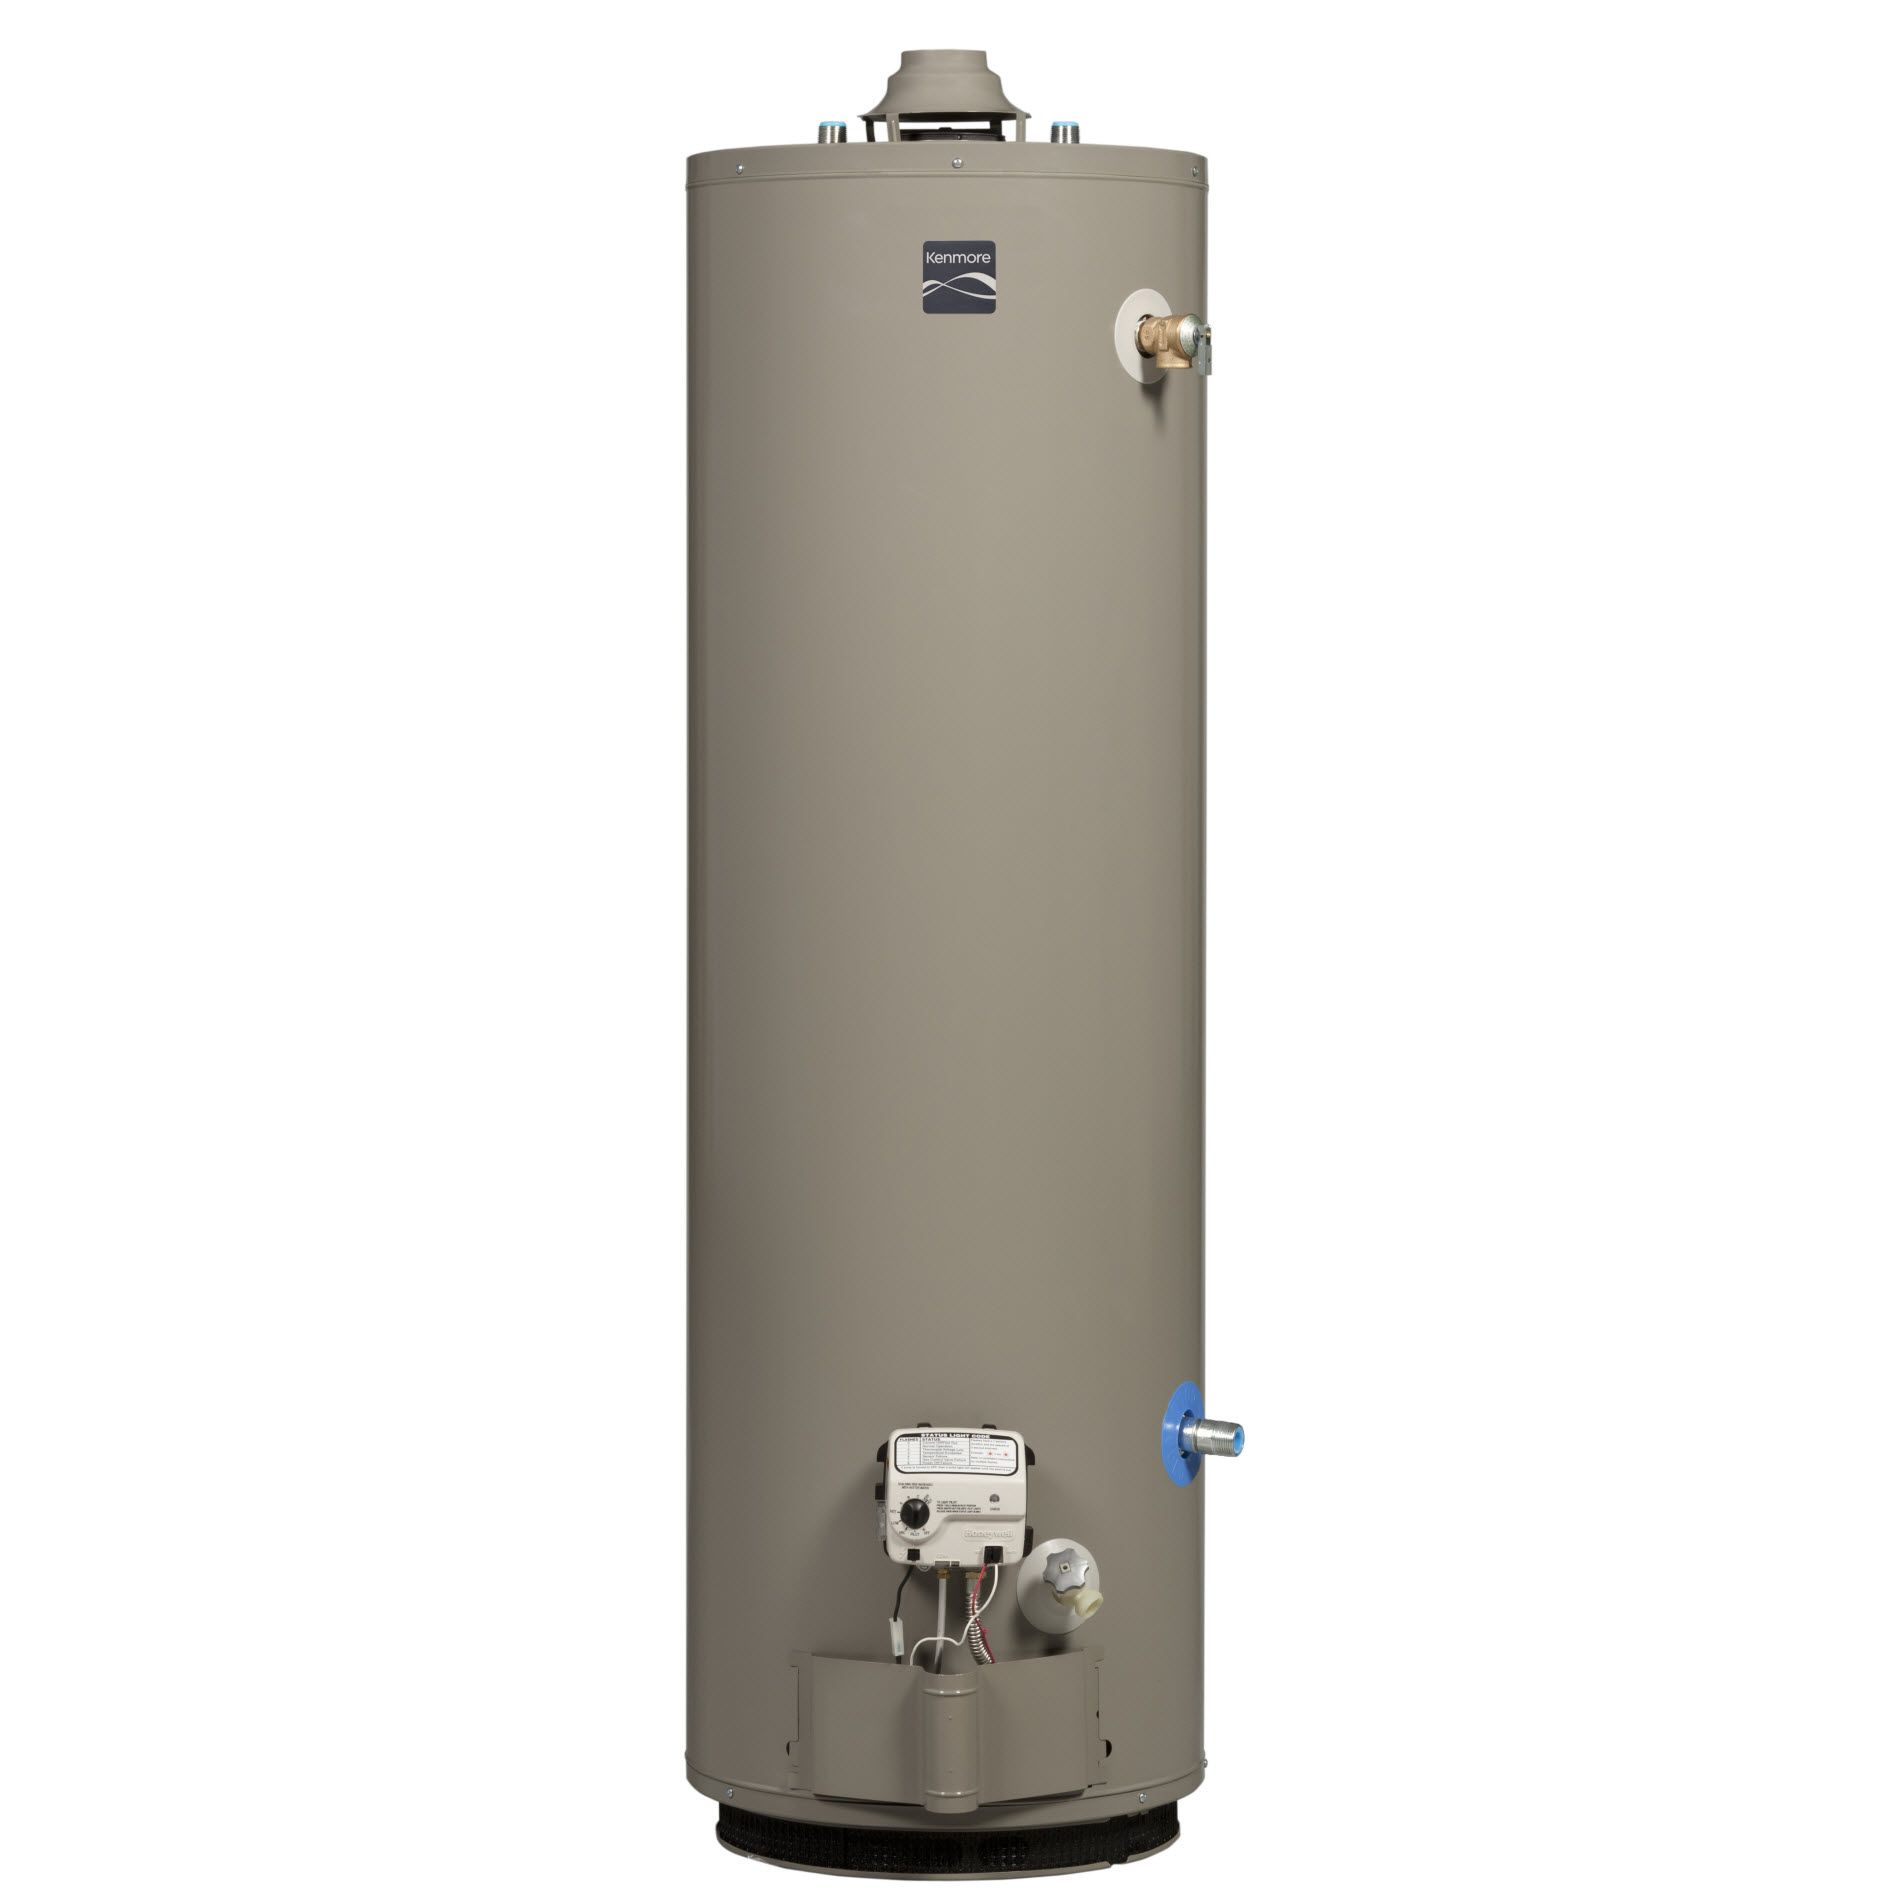 40 gal. Mobile Home Natural Gas Water Heater